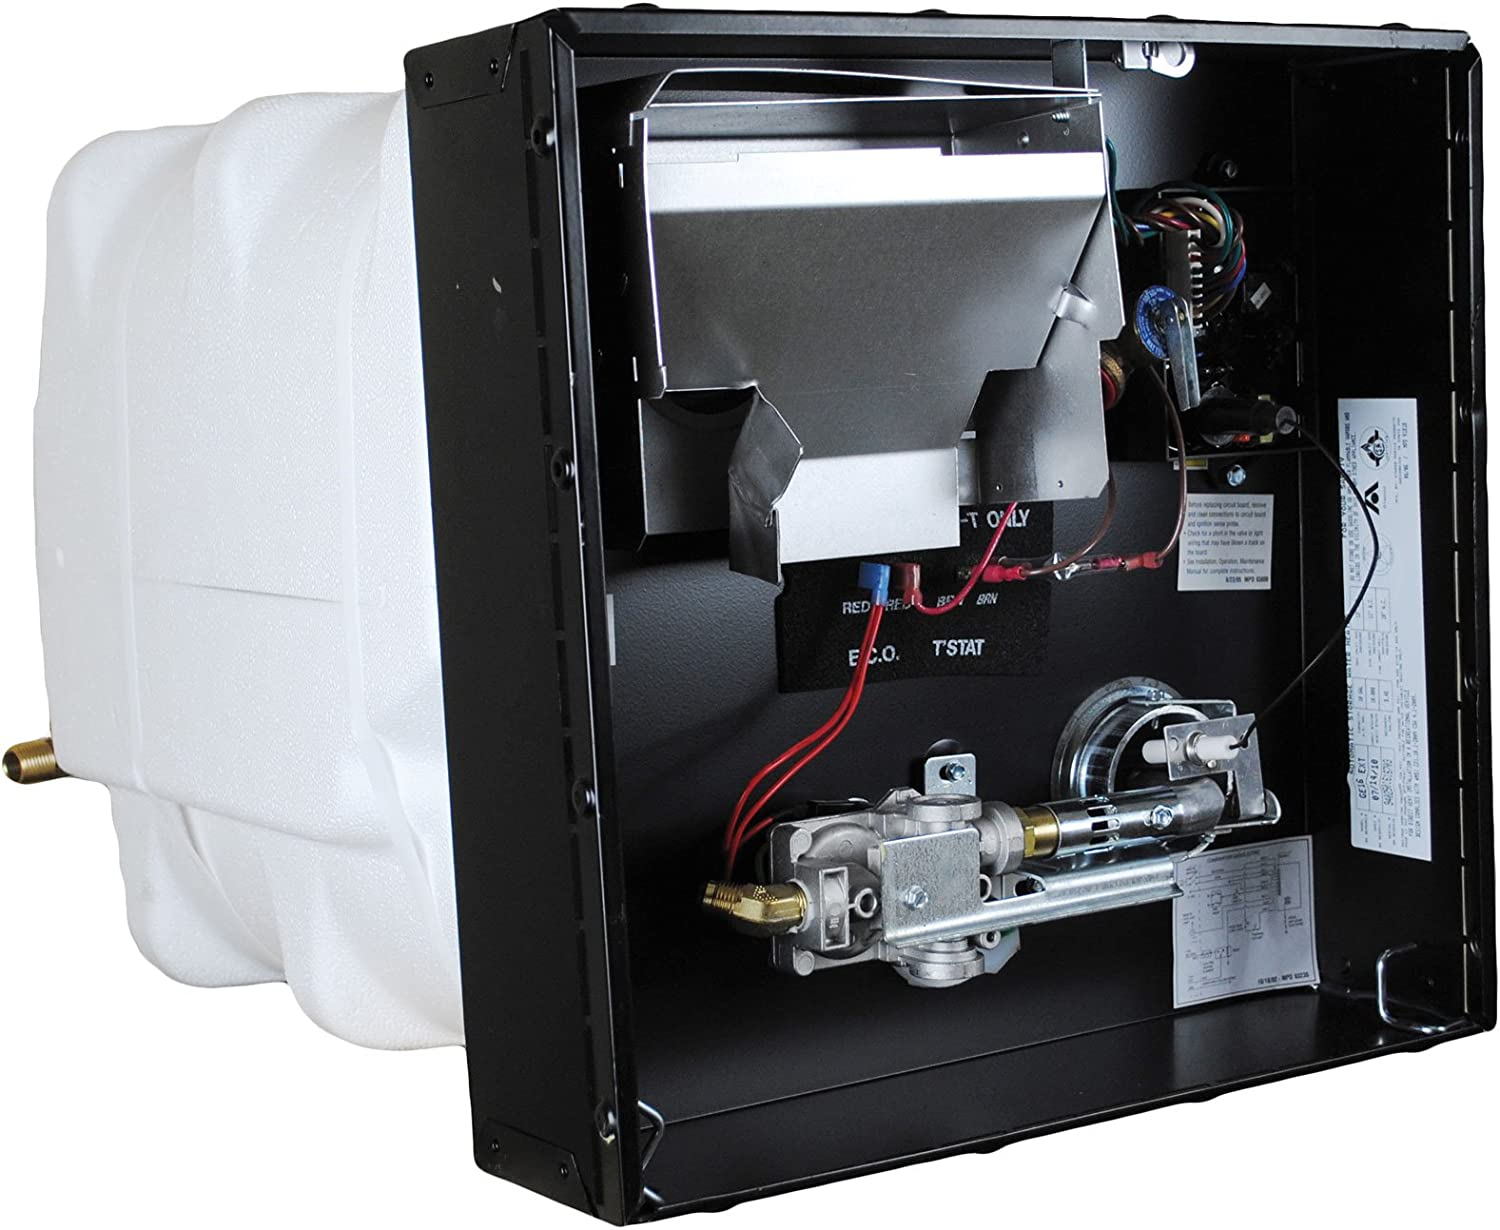 Atwood 90073 XT Gas Water Heater - 6 Gallon 71hY-H6crkLSL1500_